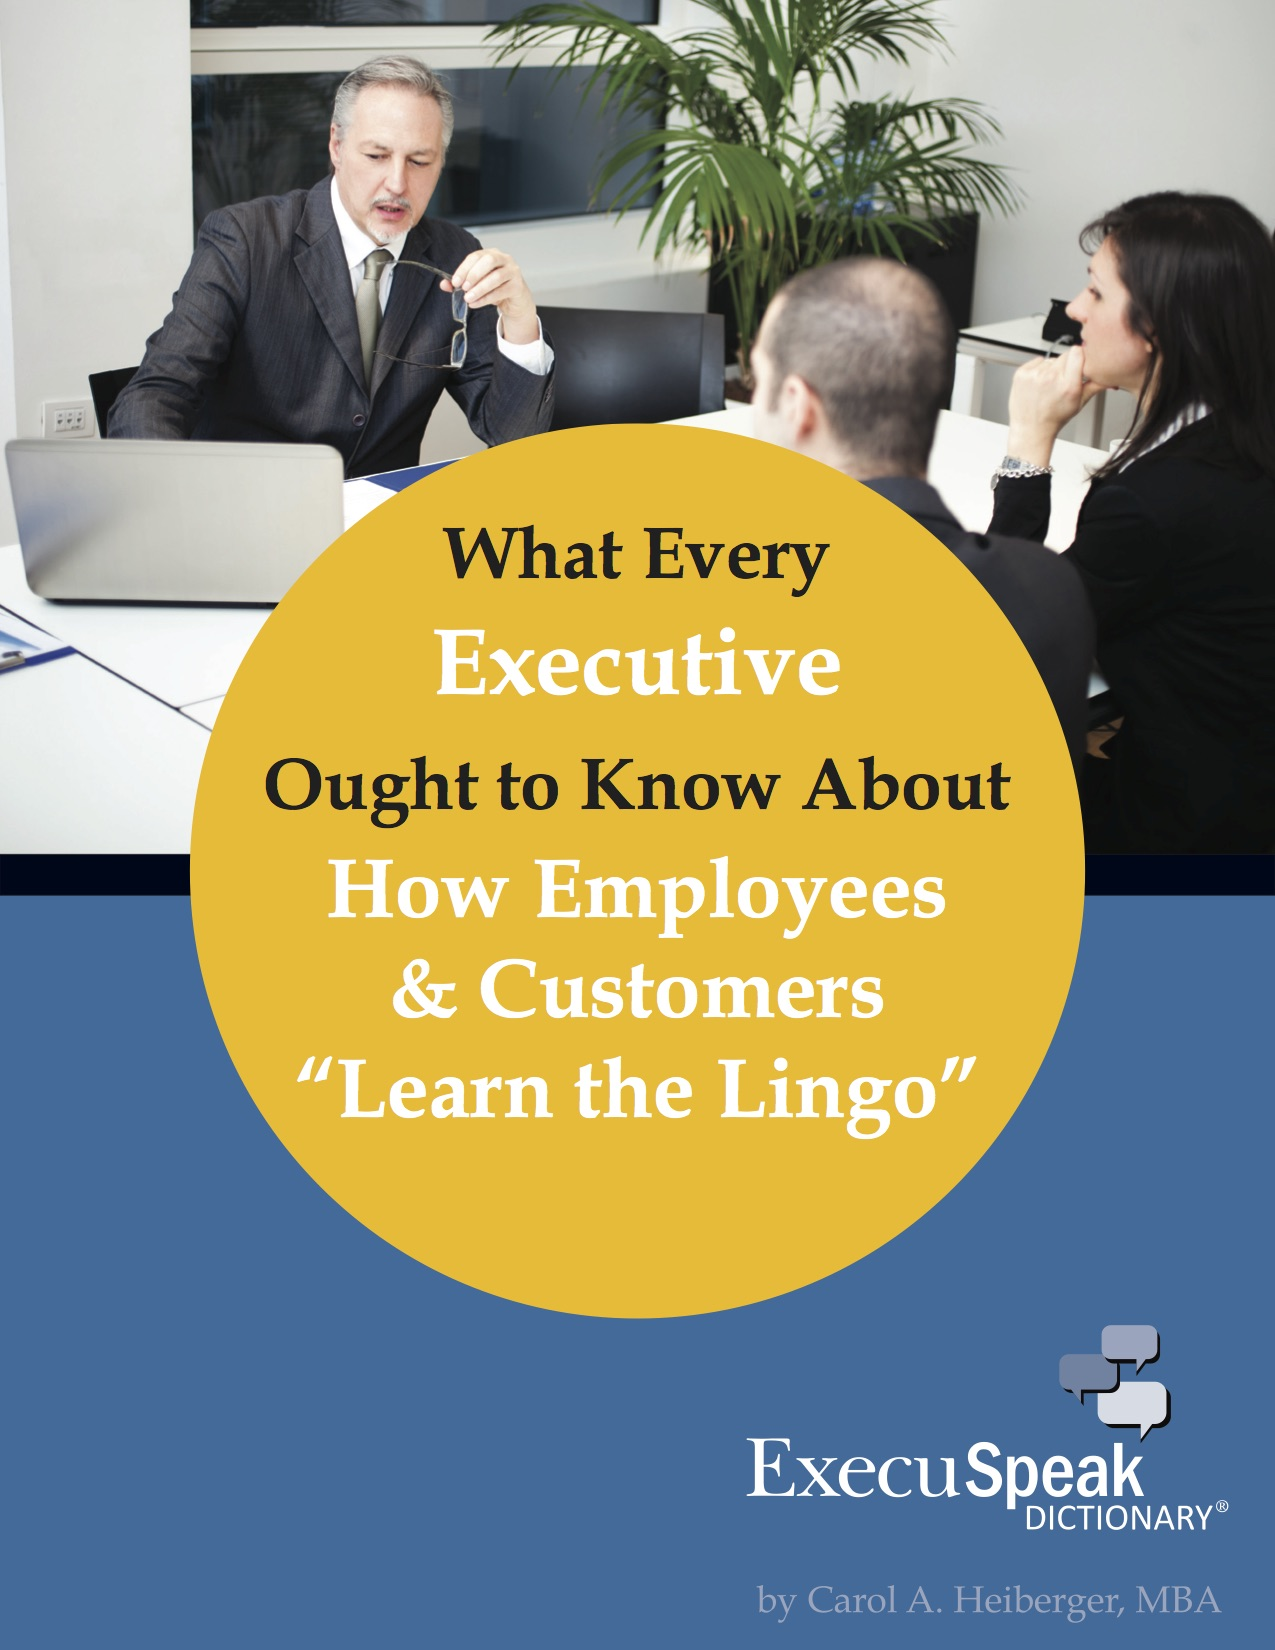 What Every Executive Ought to Know About How Employees and Customers 'Learn the Lingo'